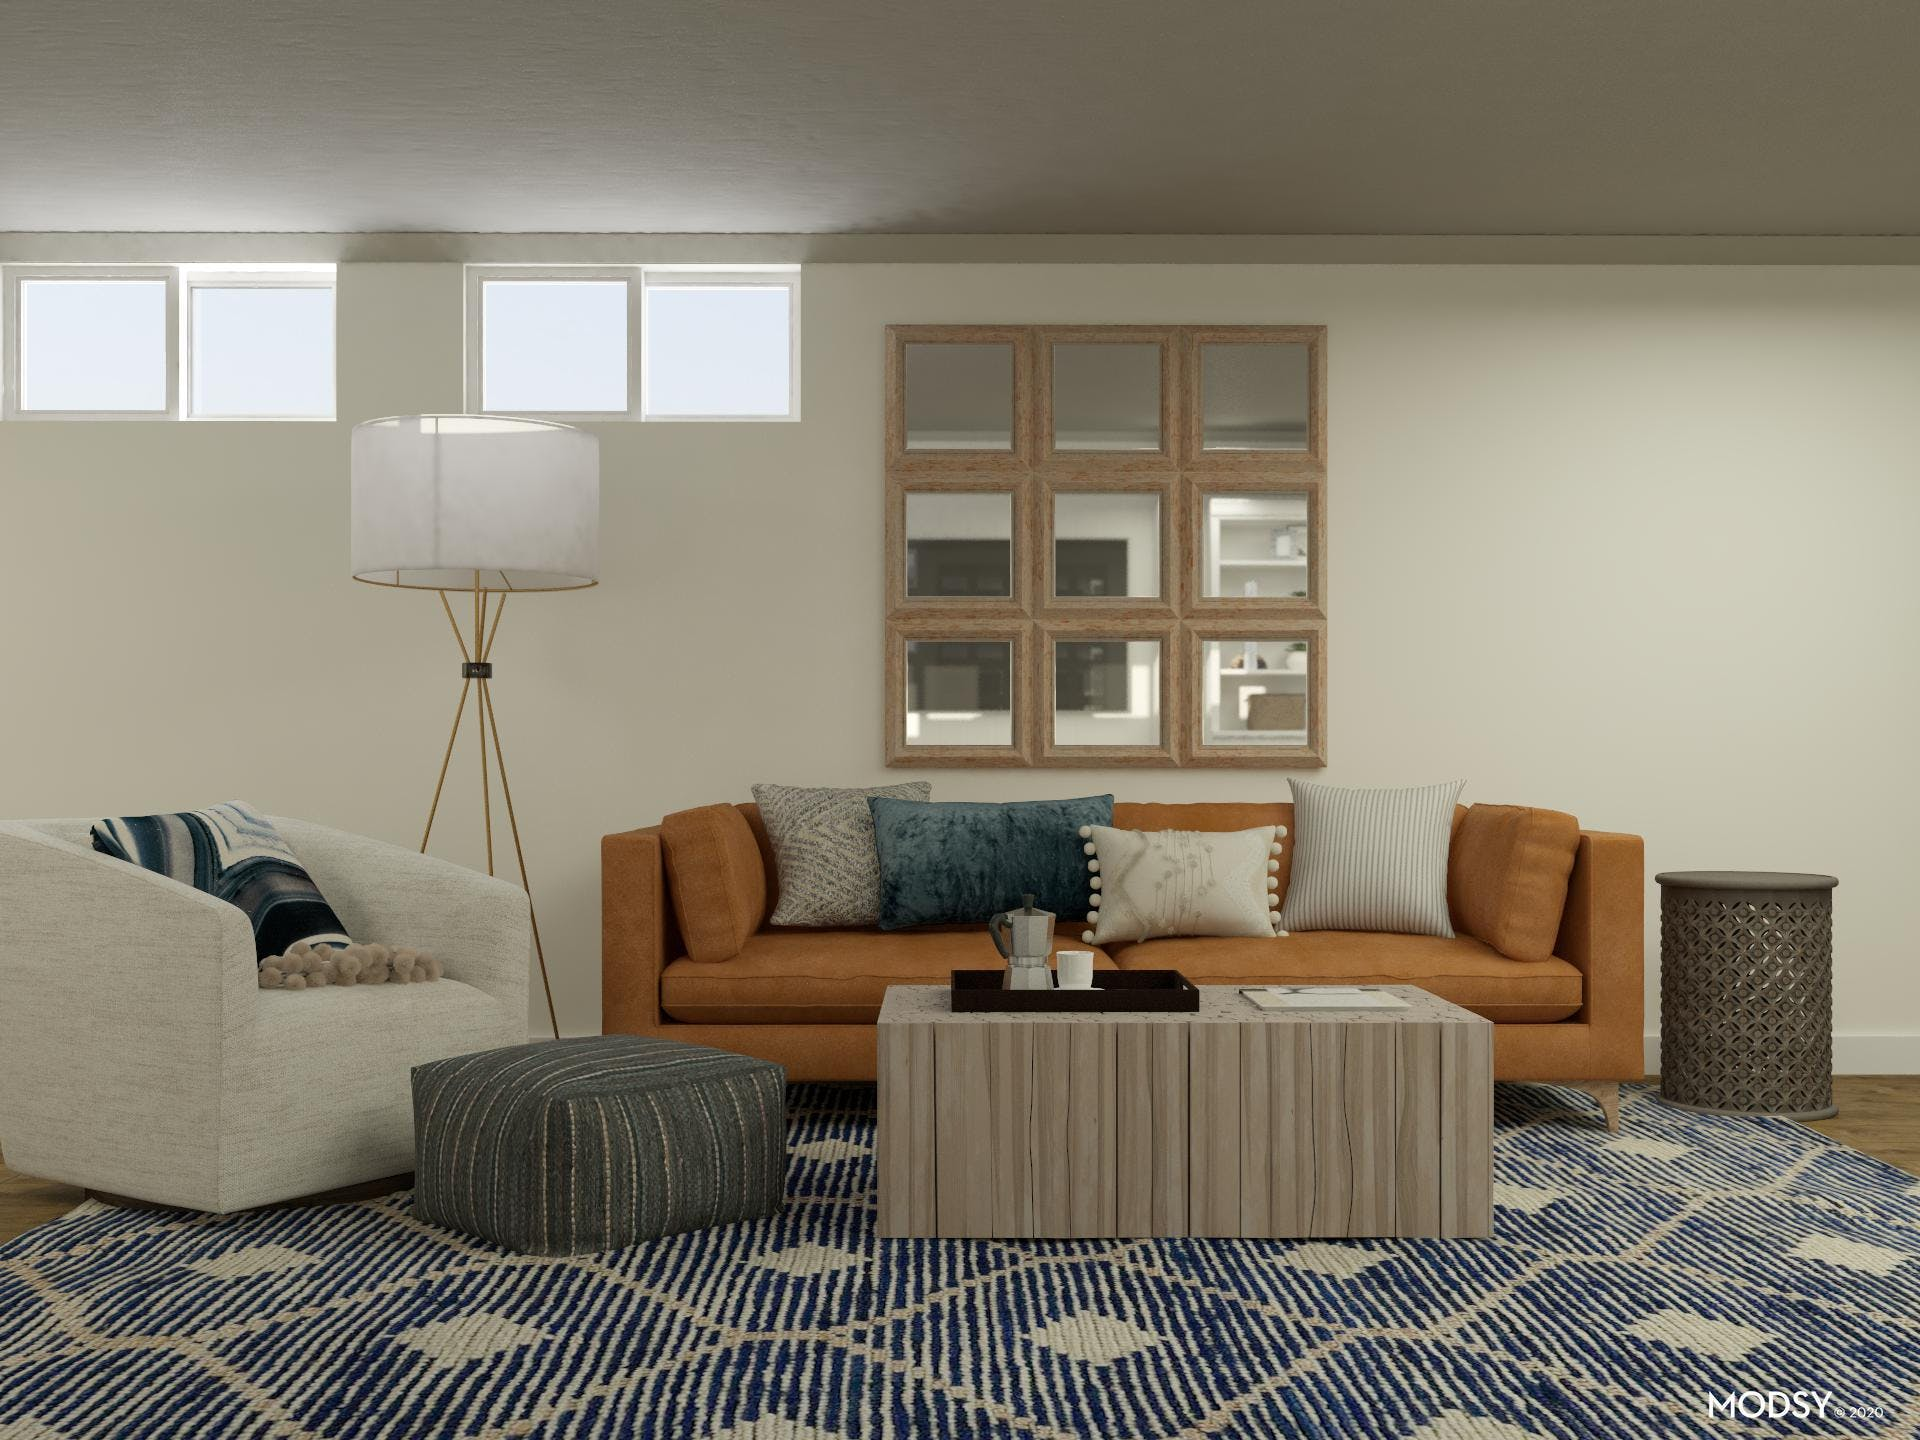 Basement Living Room in Casual Transitional Style